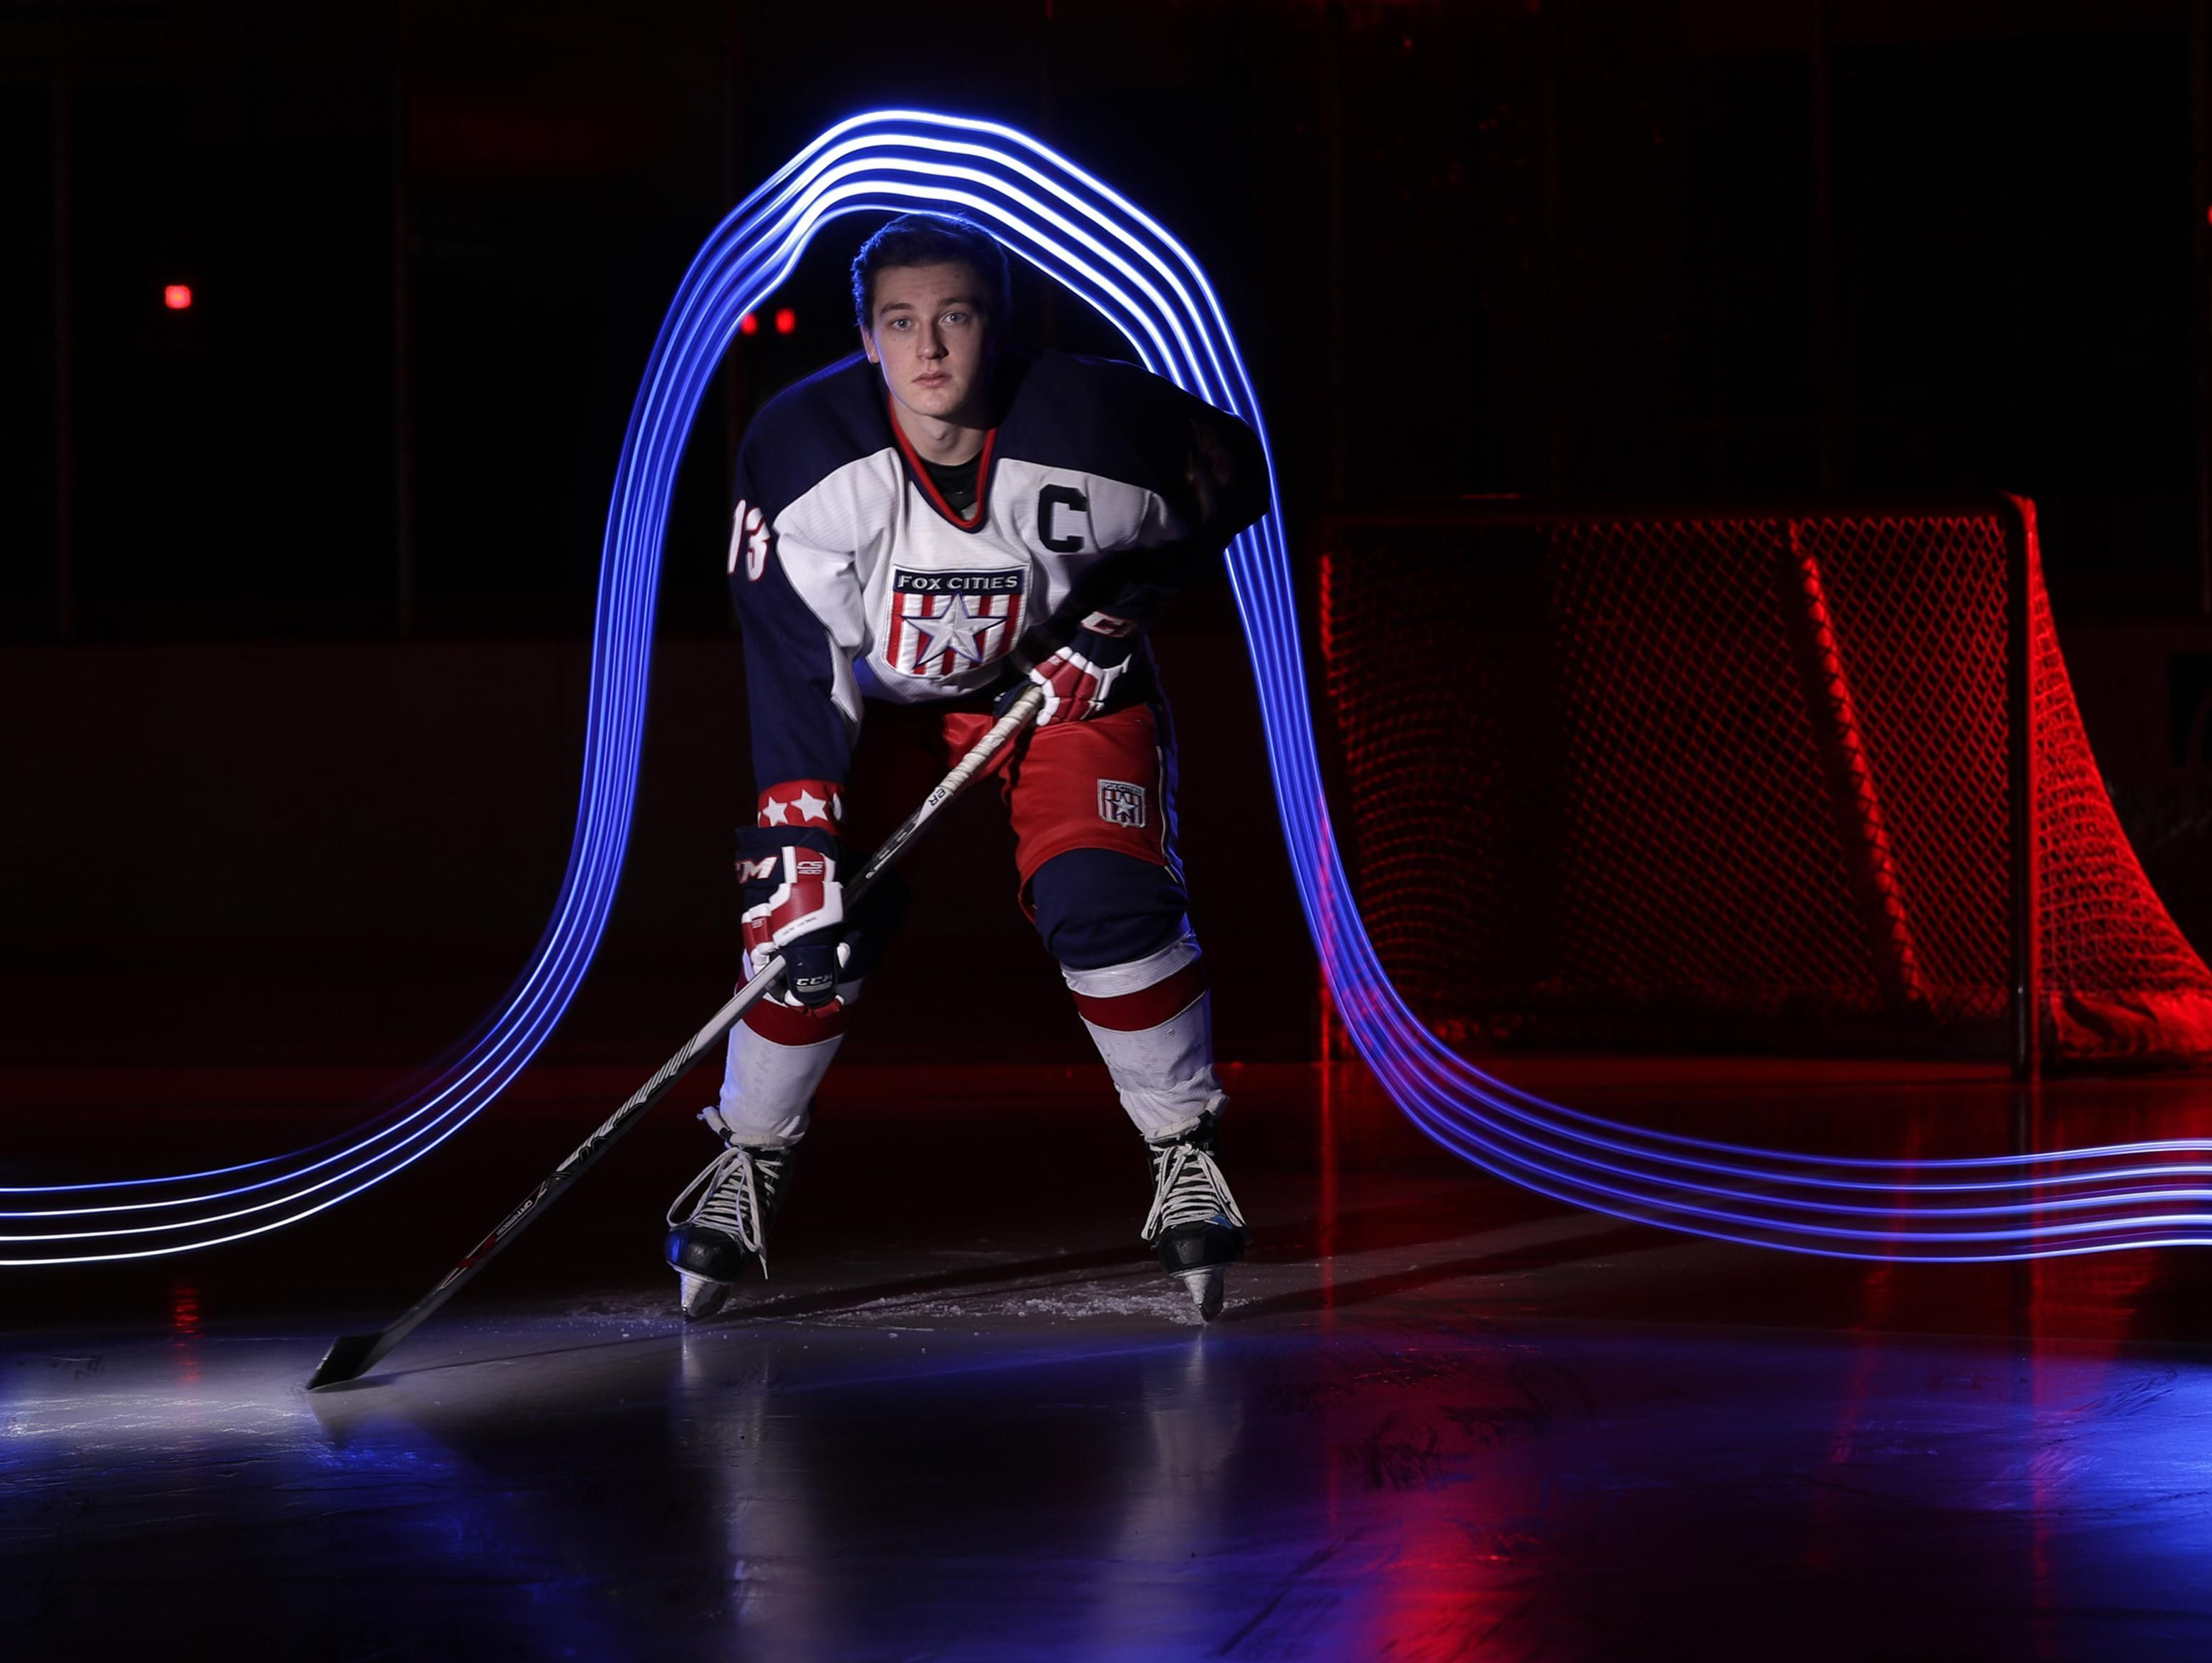 Fox Cities Stars' Hunter Schwehr, who lead in the Appleton area in scoring with 72 points on 40 goals and 32 assists, is Post-Crescent Media's boys hockey player of the year.